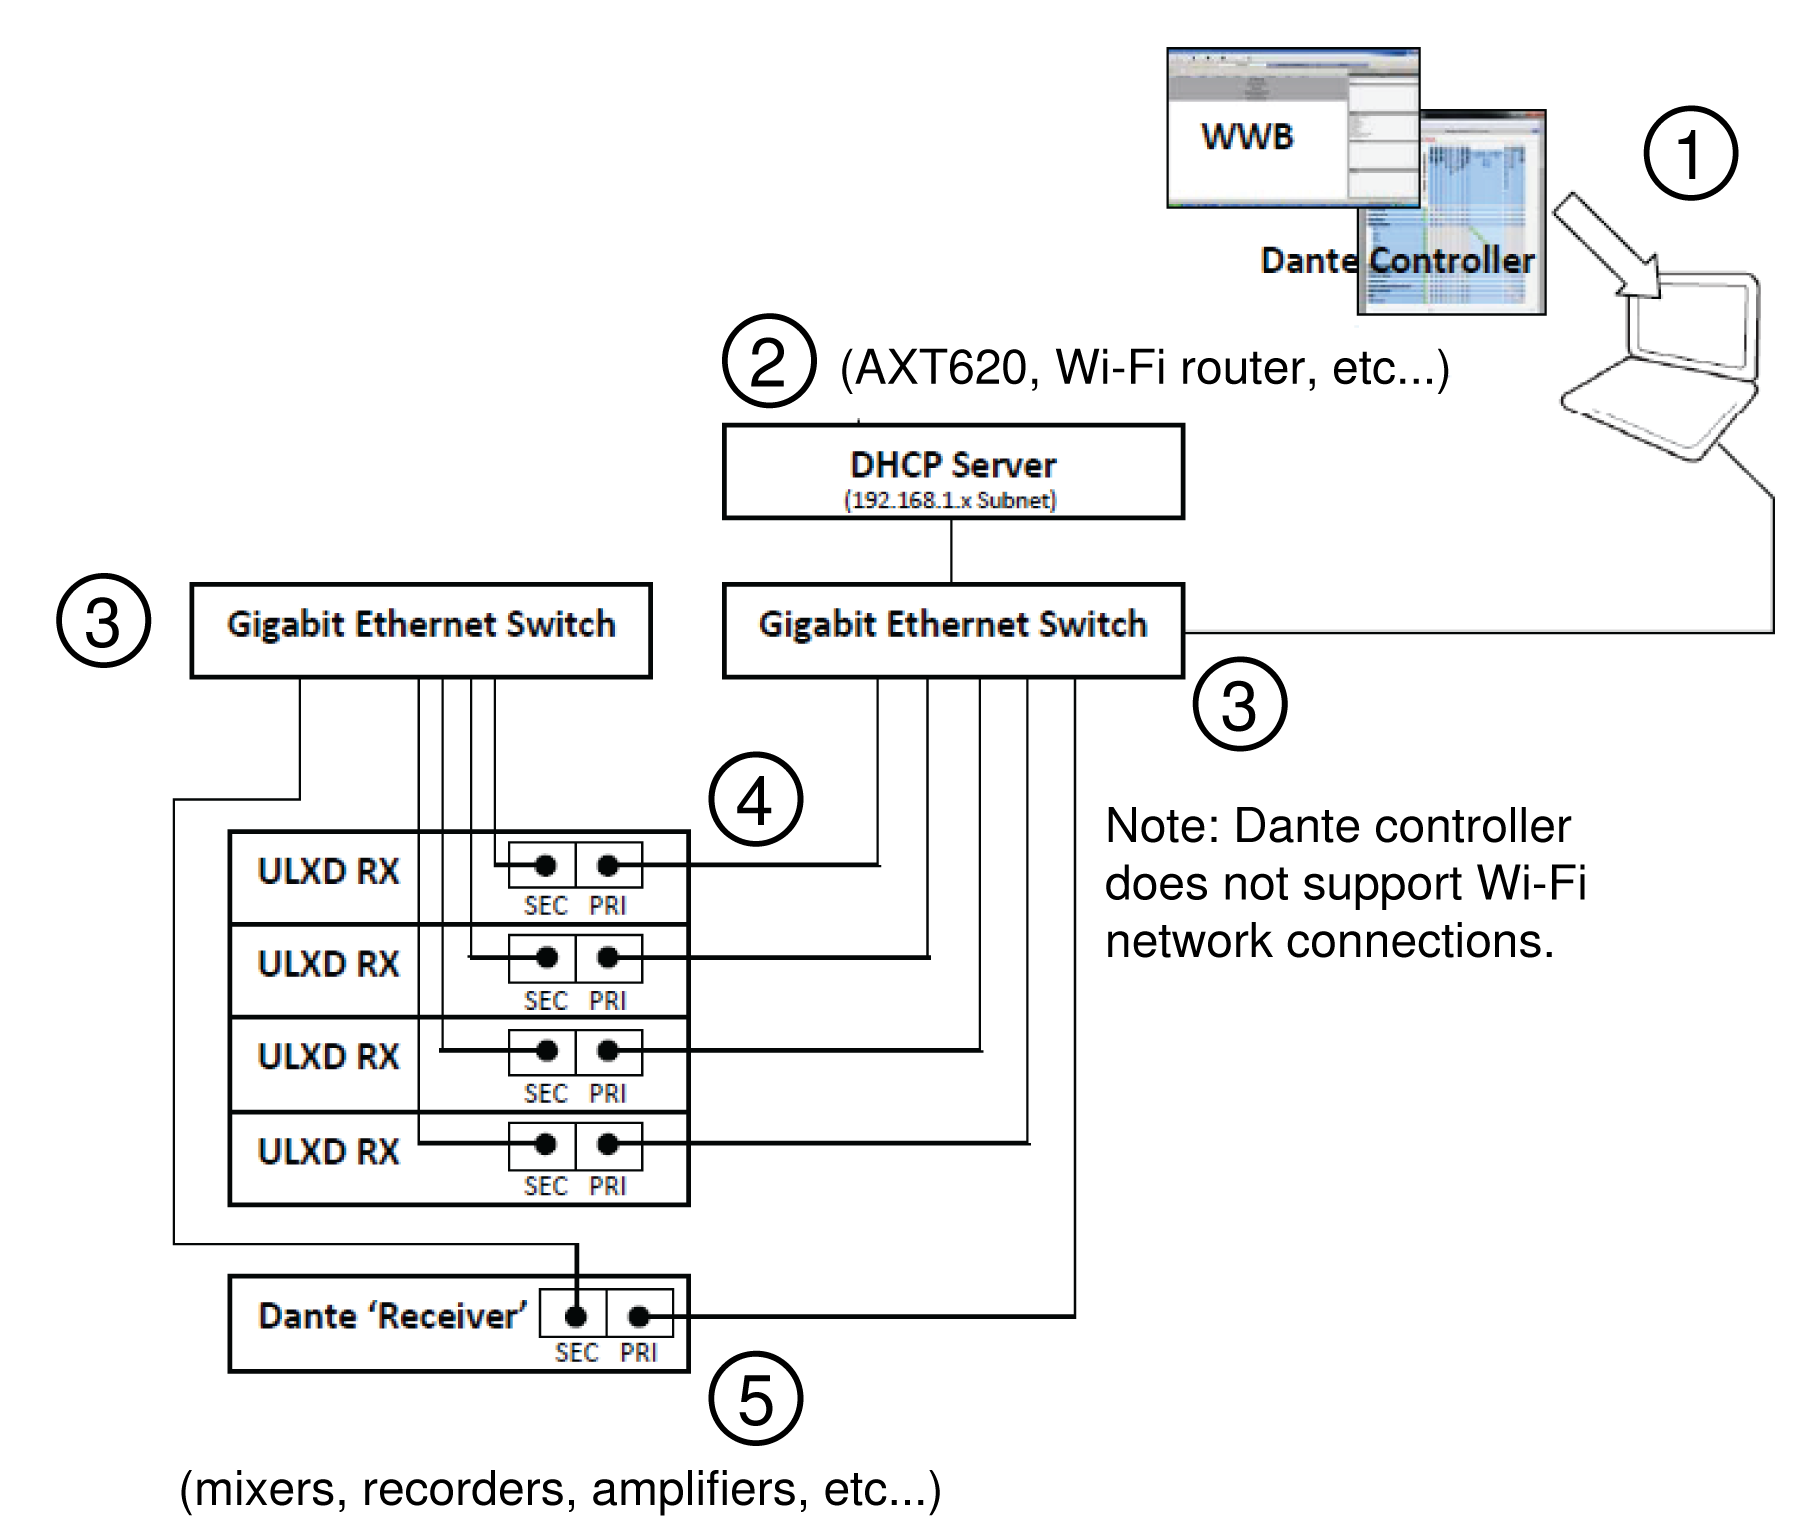 The steps to set up a network in redundant mode illustrated